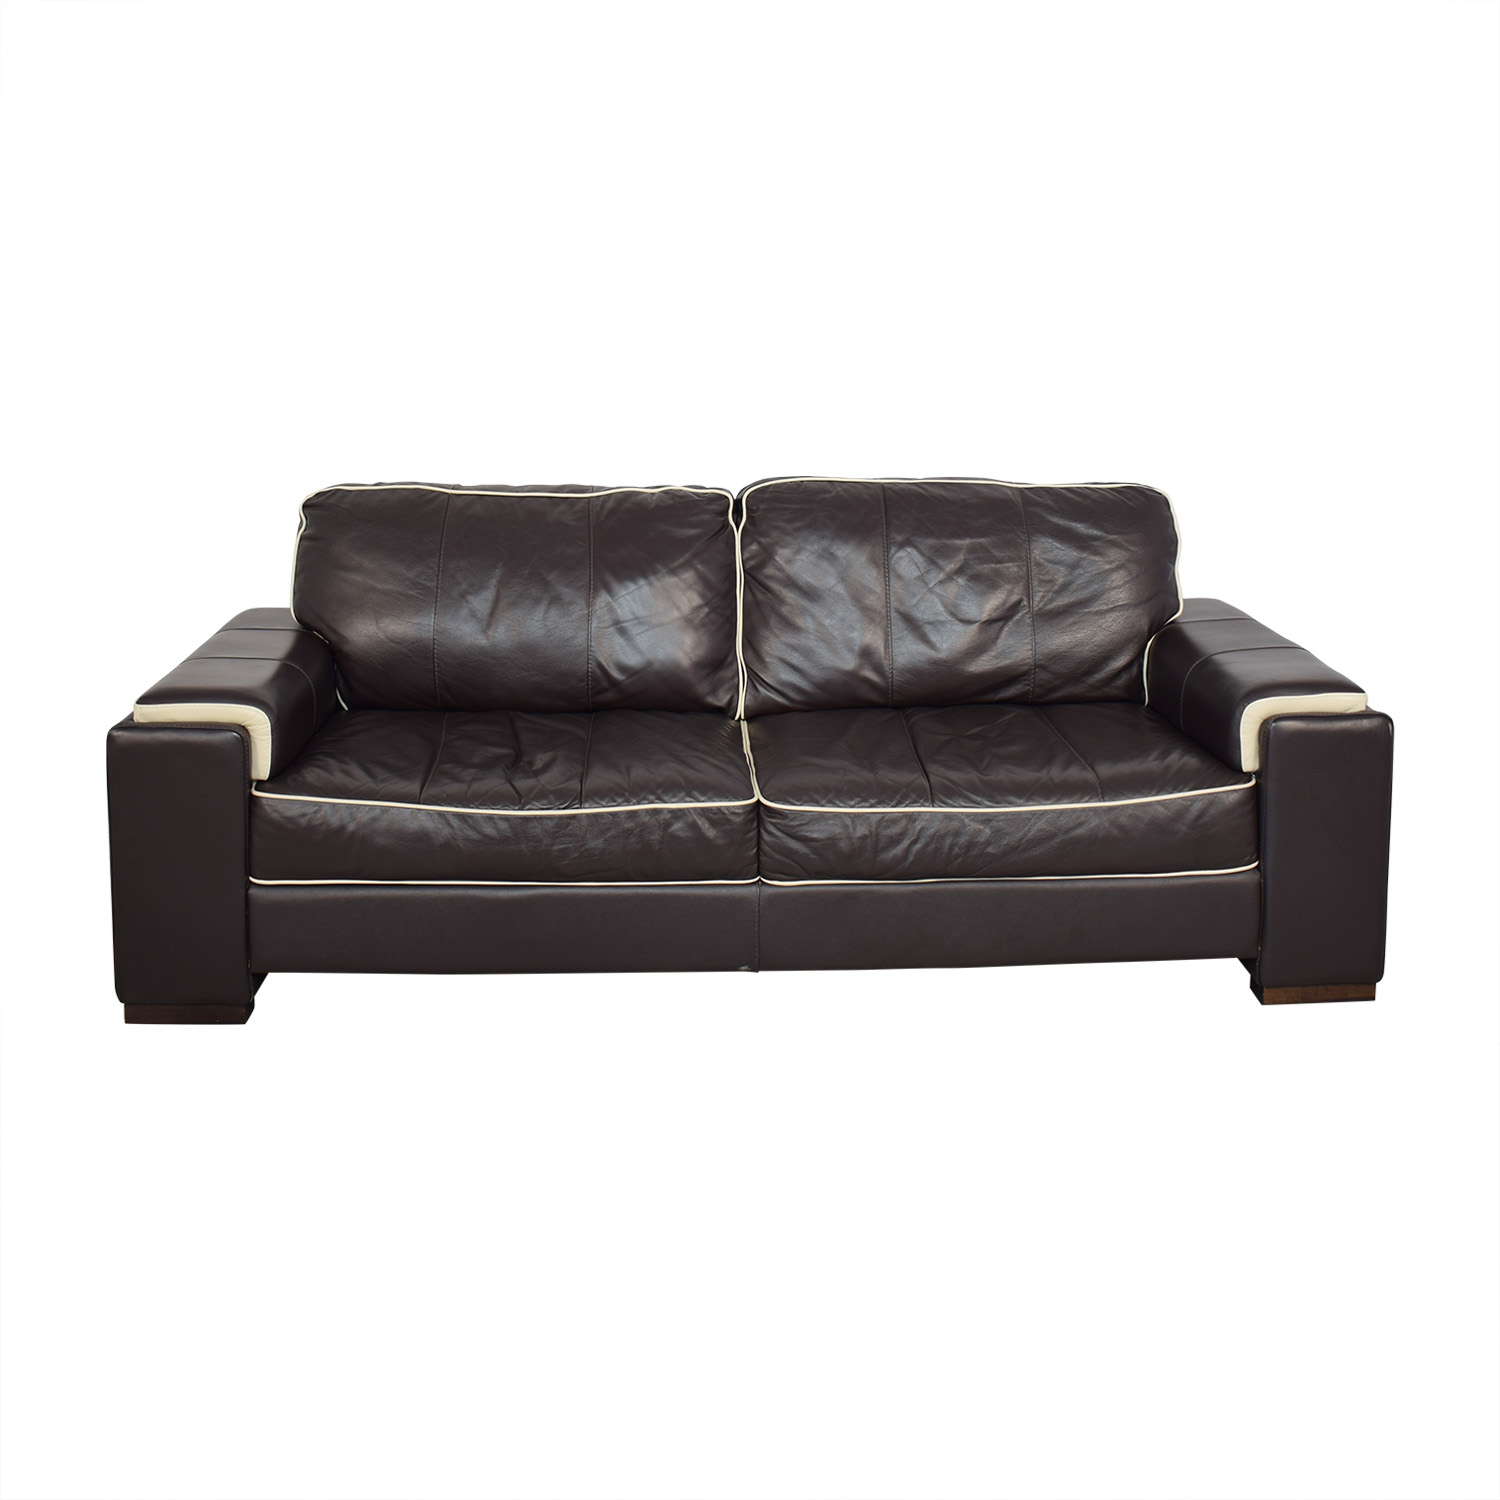 American Signature Soft Line Two Cushion Sofa / Classic Sofas